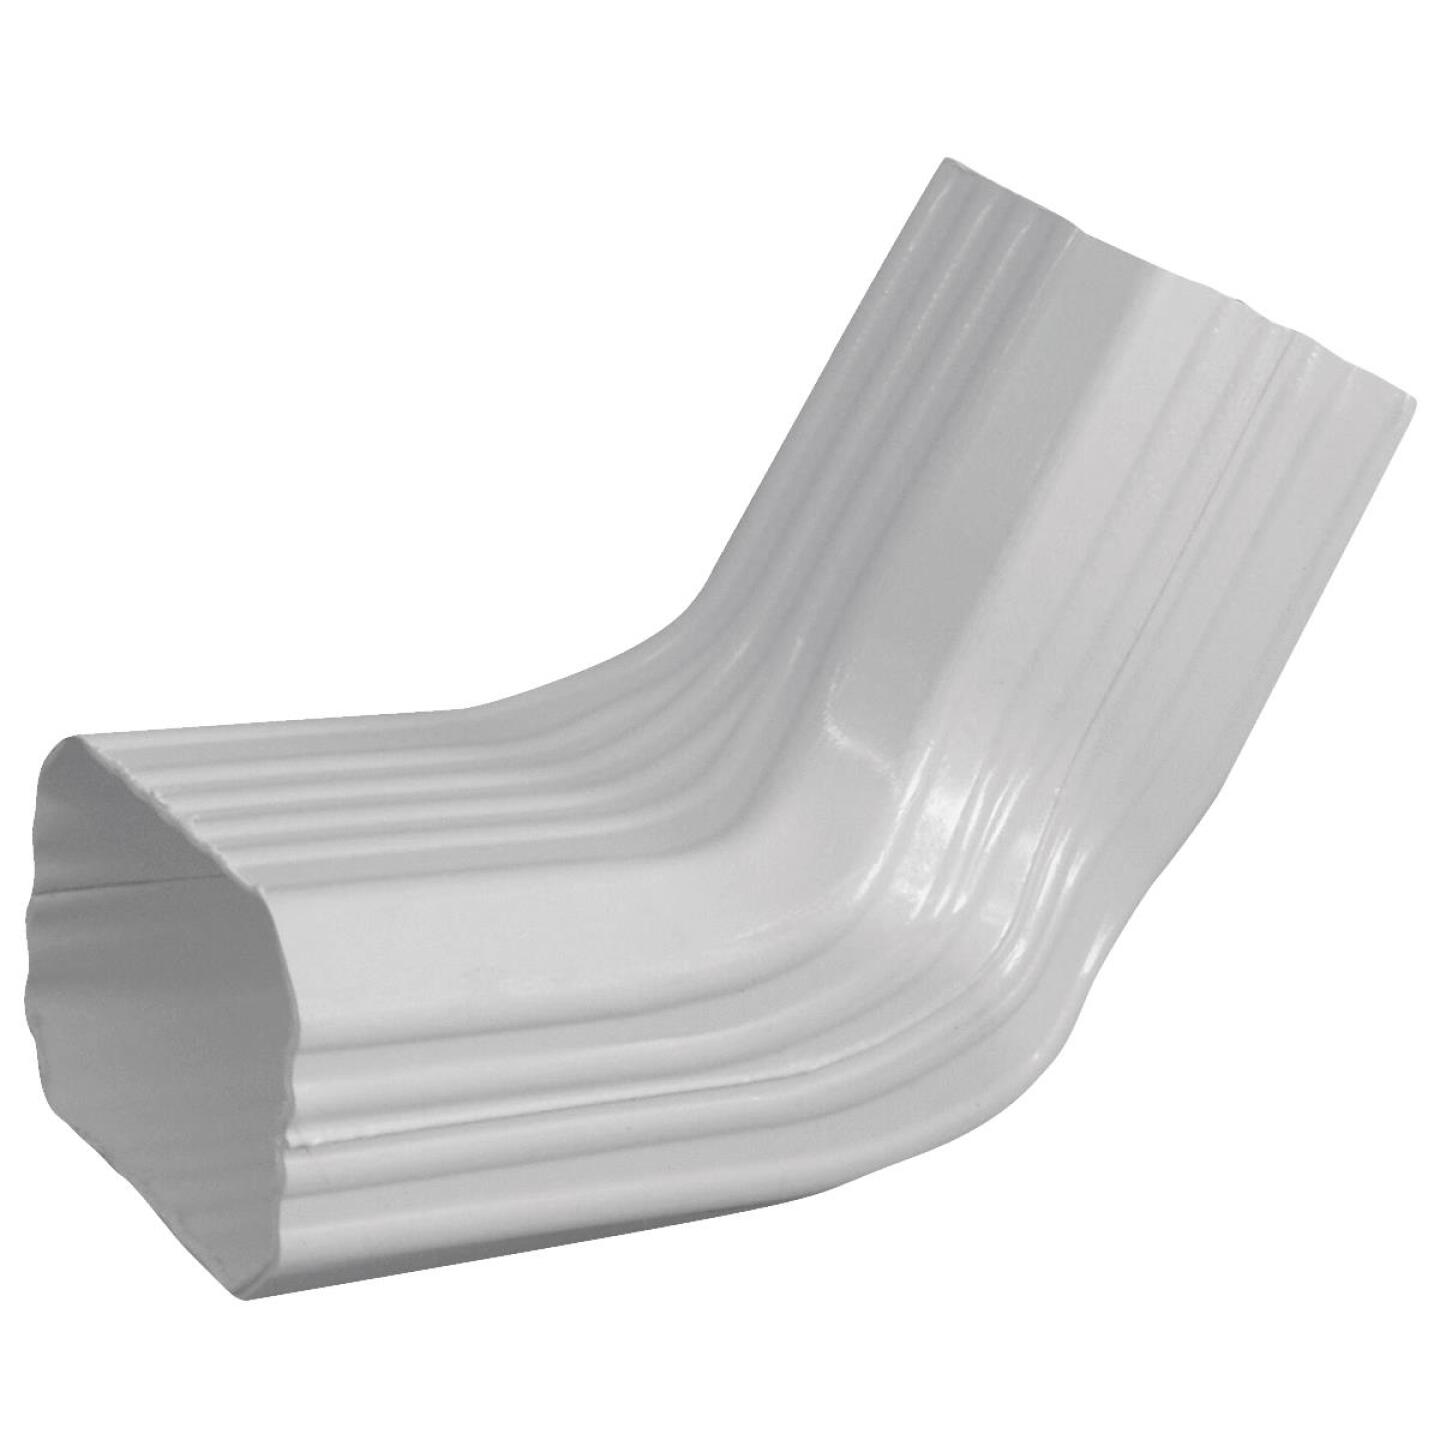 Repla K 2 x 3 In. Vinyl White Front or Side Downspout Elbow Image 1